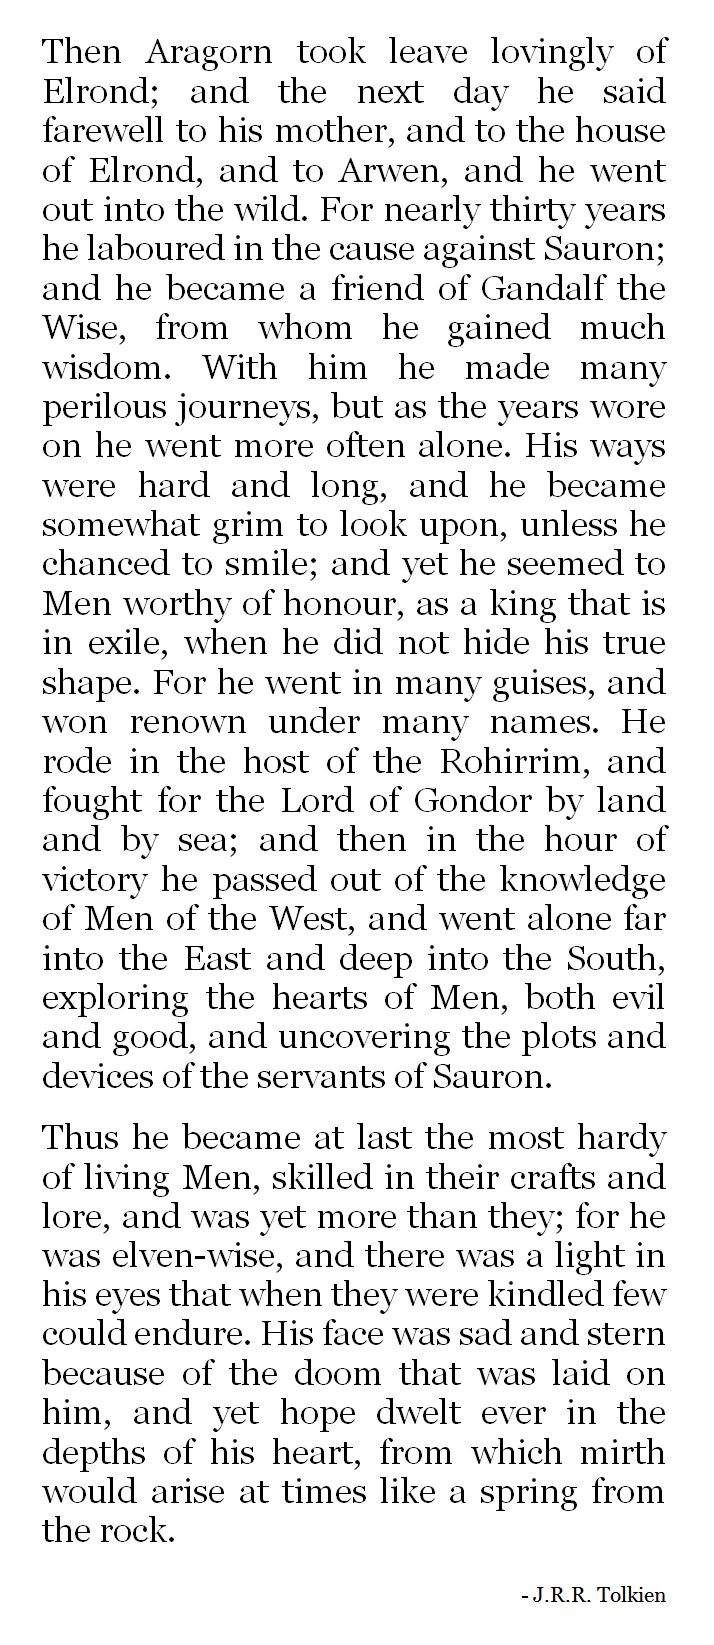 J.R.R. Tolkien from the appendices The Love Story of Aragorn and Arwen